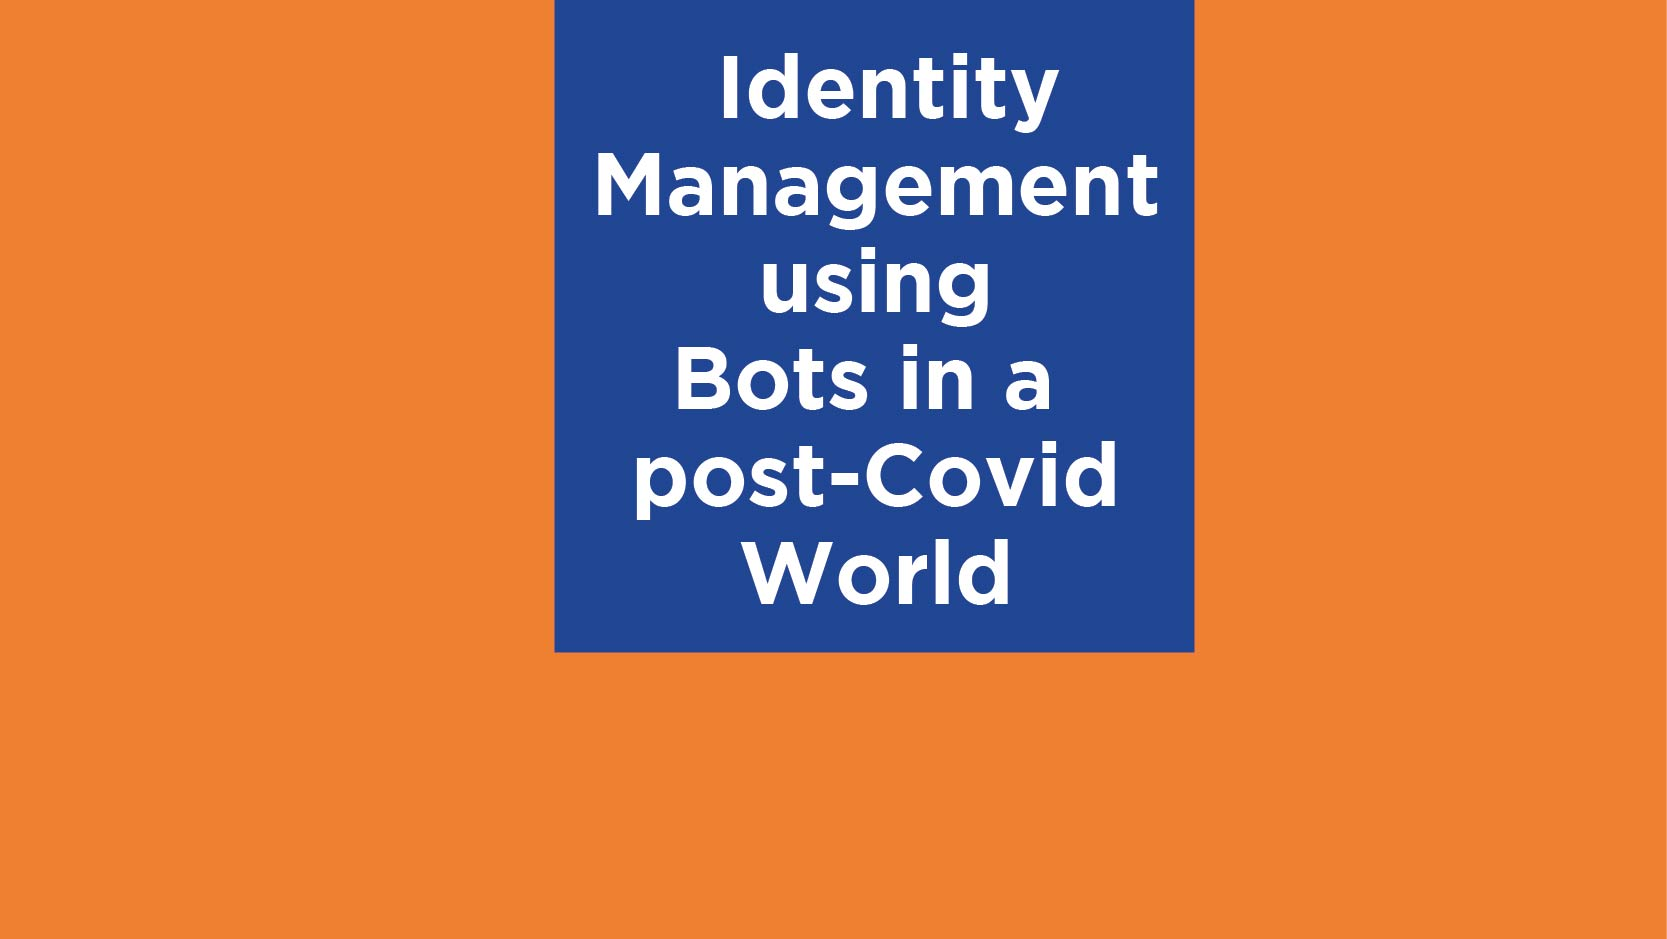 Virtual Meetup – Identity Management using Bots in a Post-Covid World post thumbnail image